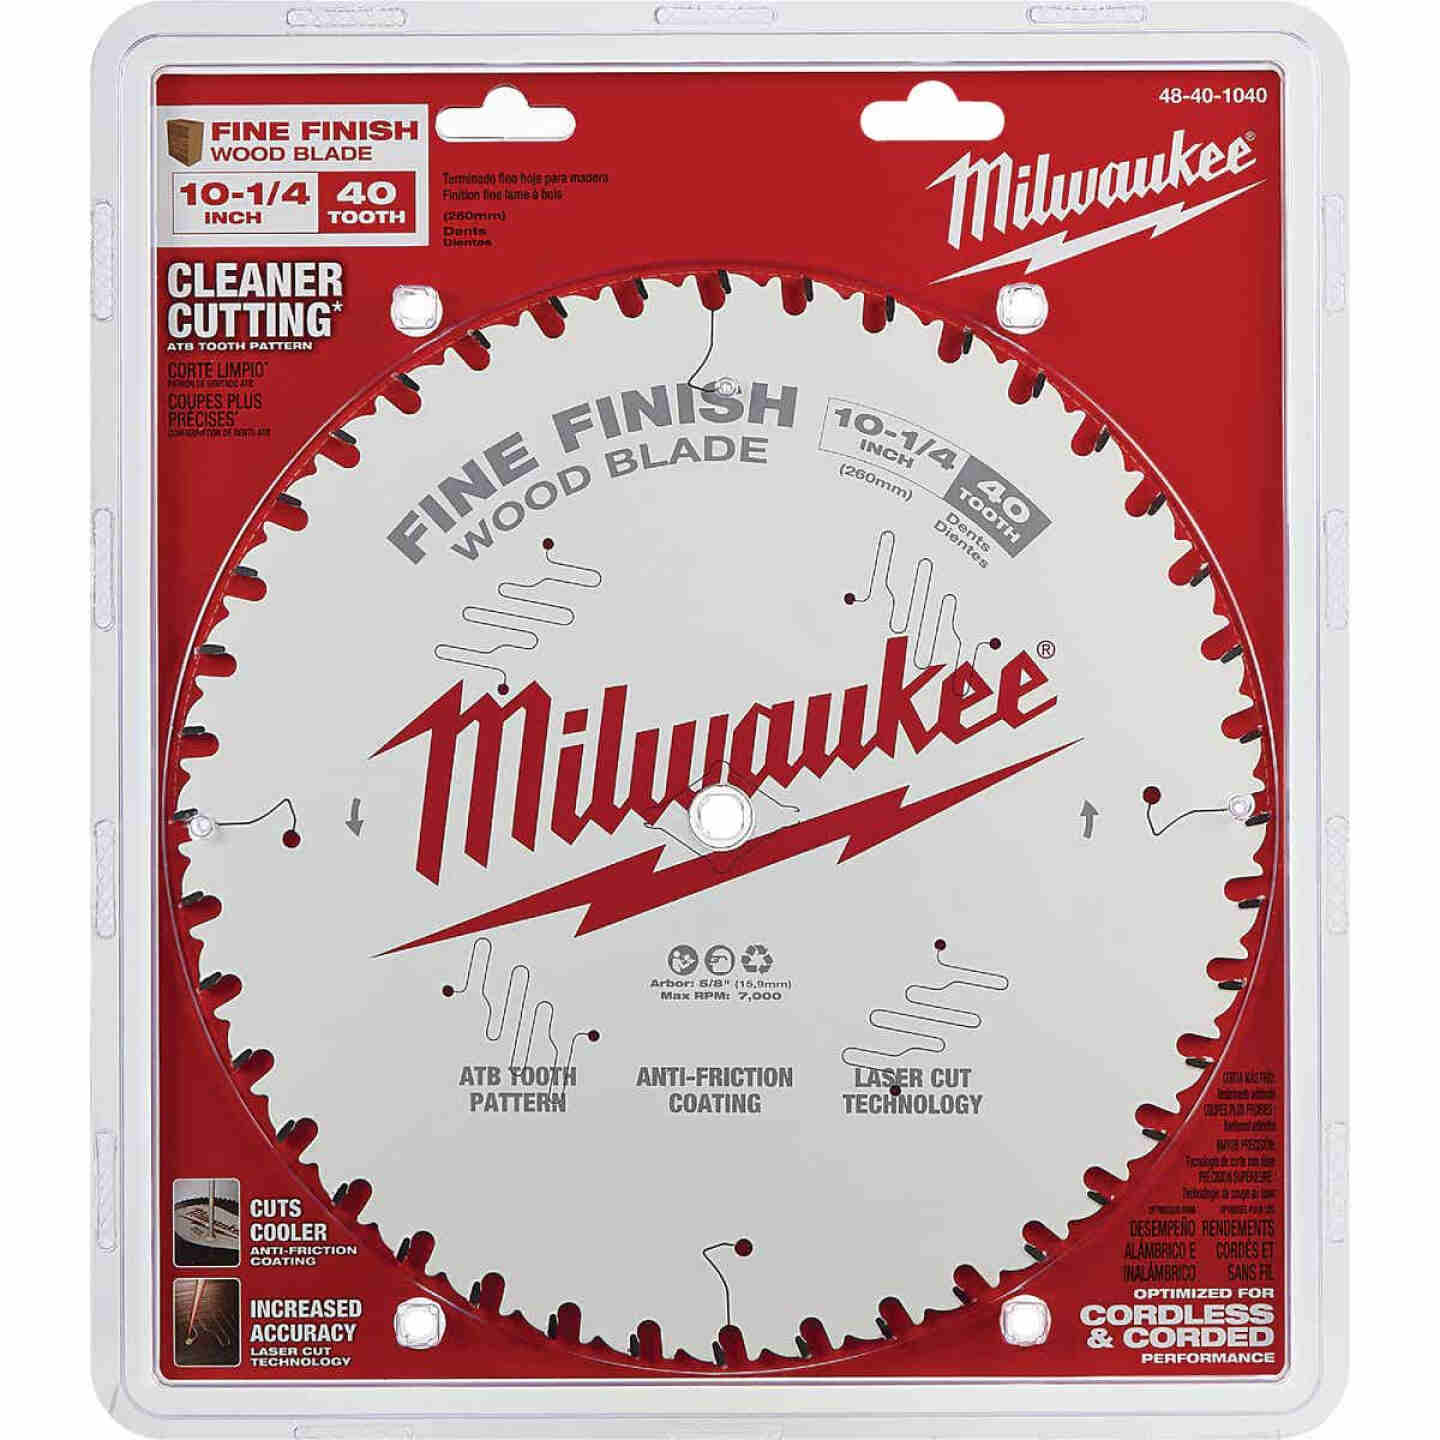 Milwaukee 10-1/4 In. 40-Tooth Fine Finish Circular Saw Blade Image 2